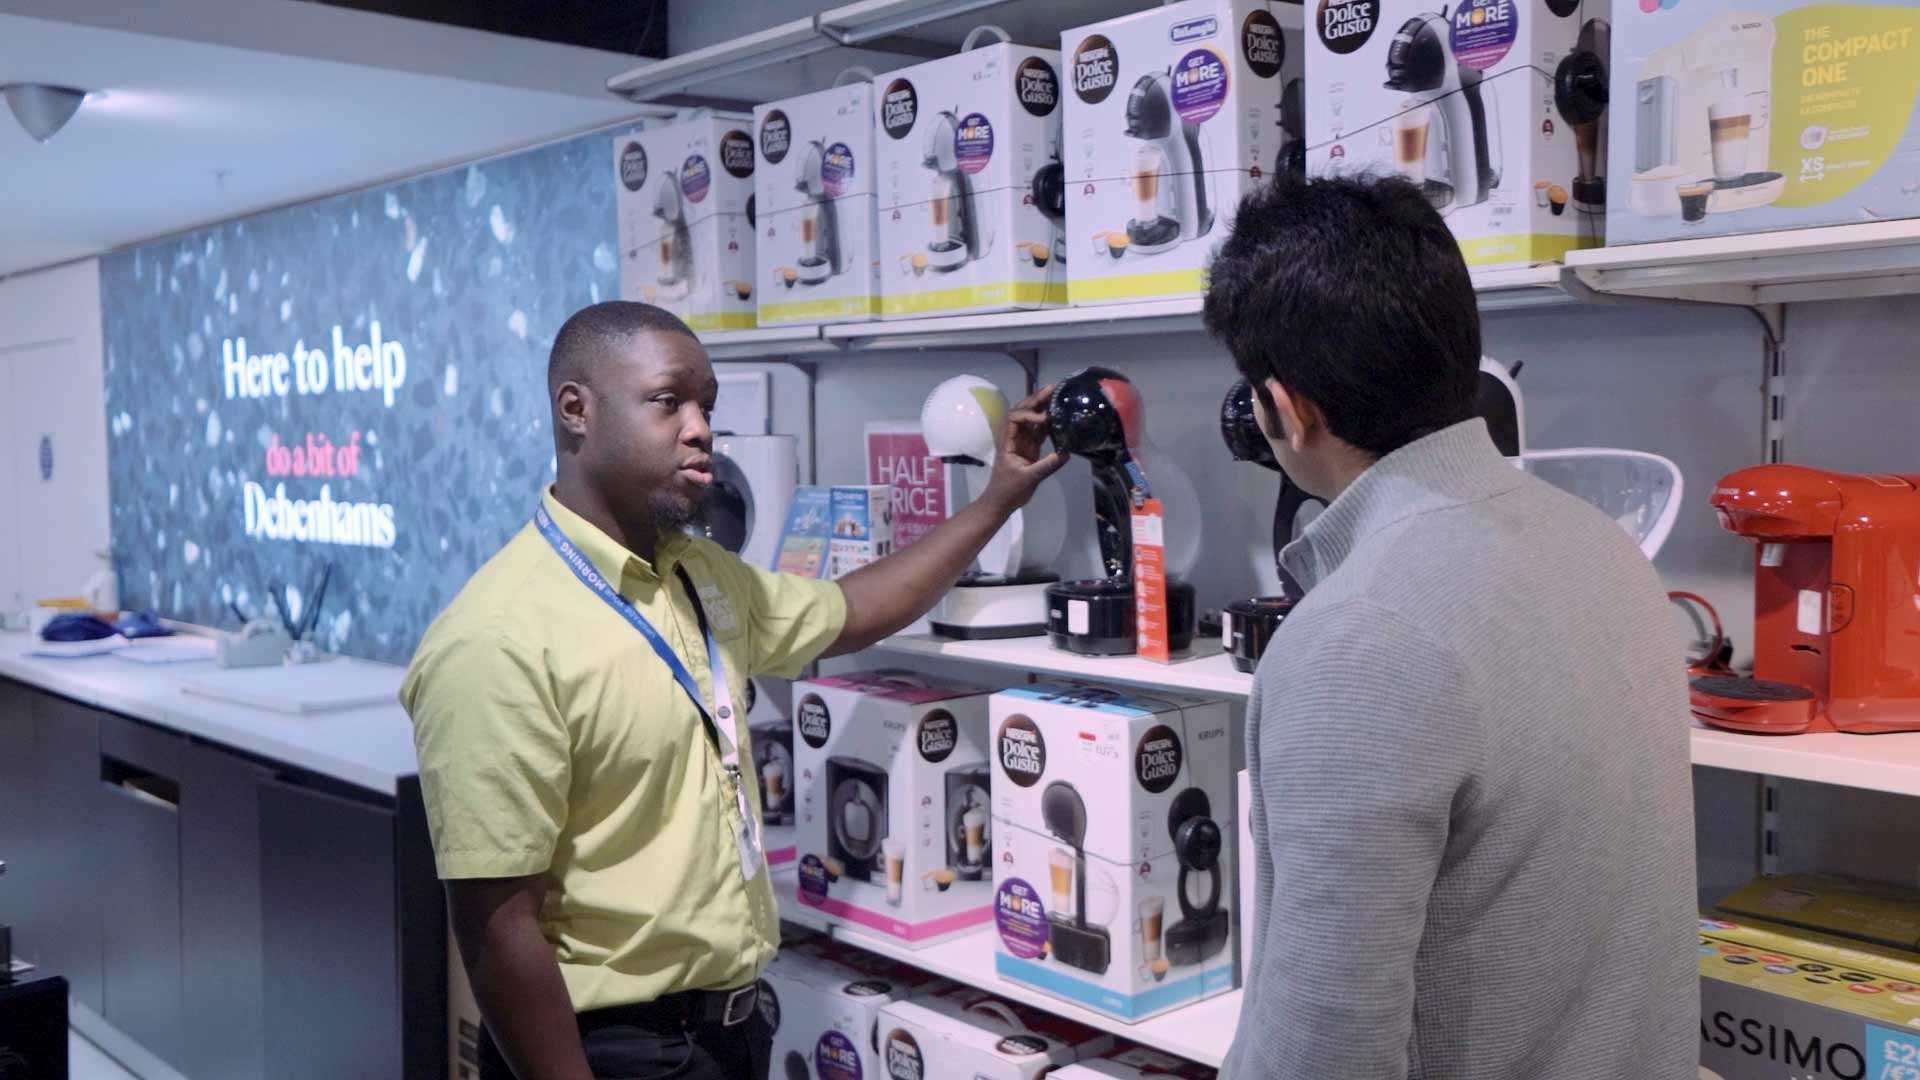 Nescafe Dolce Gusto Retail Marketing Group